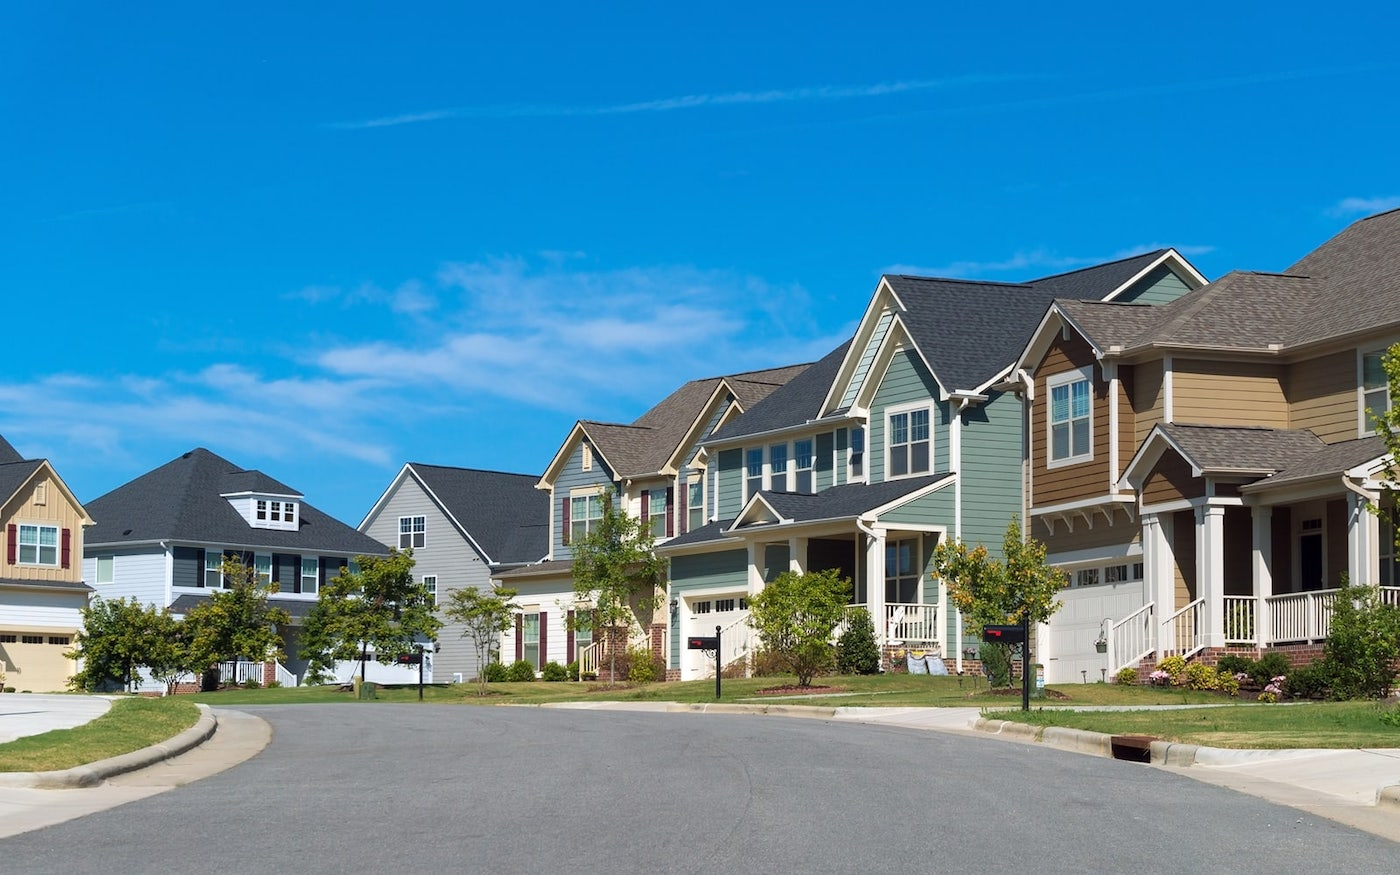 Things Every Homeowner Must Know in Holmdel, New Jersey – 3 home safety hazards and how to prevent them